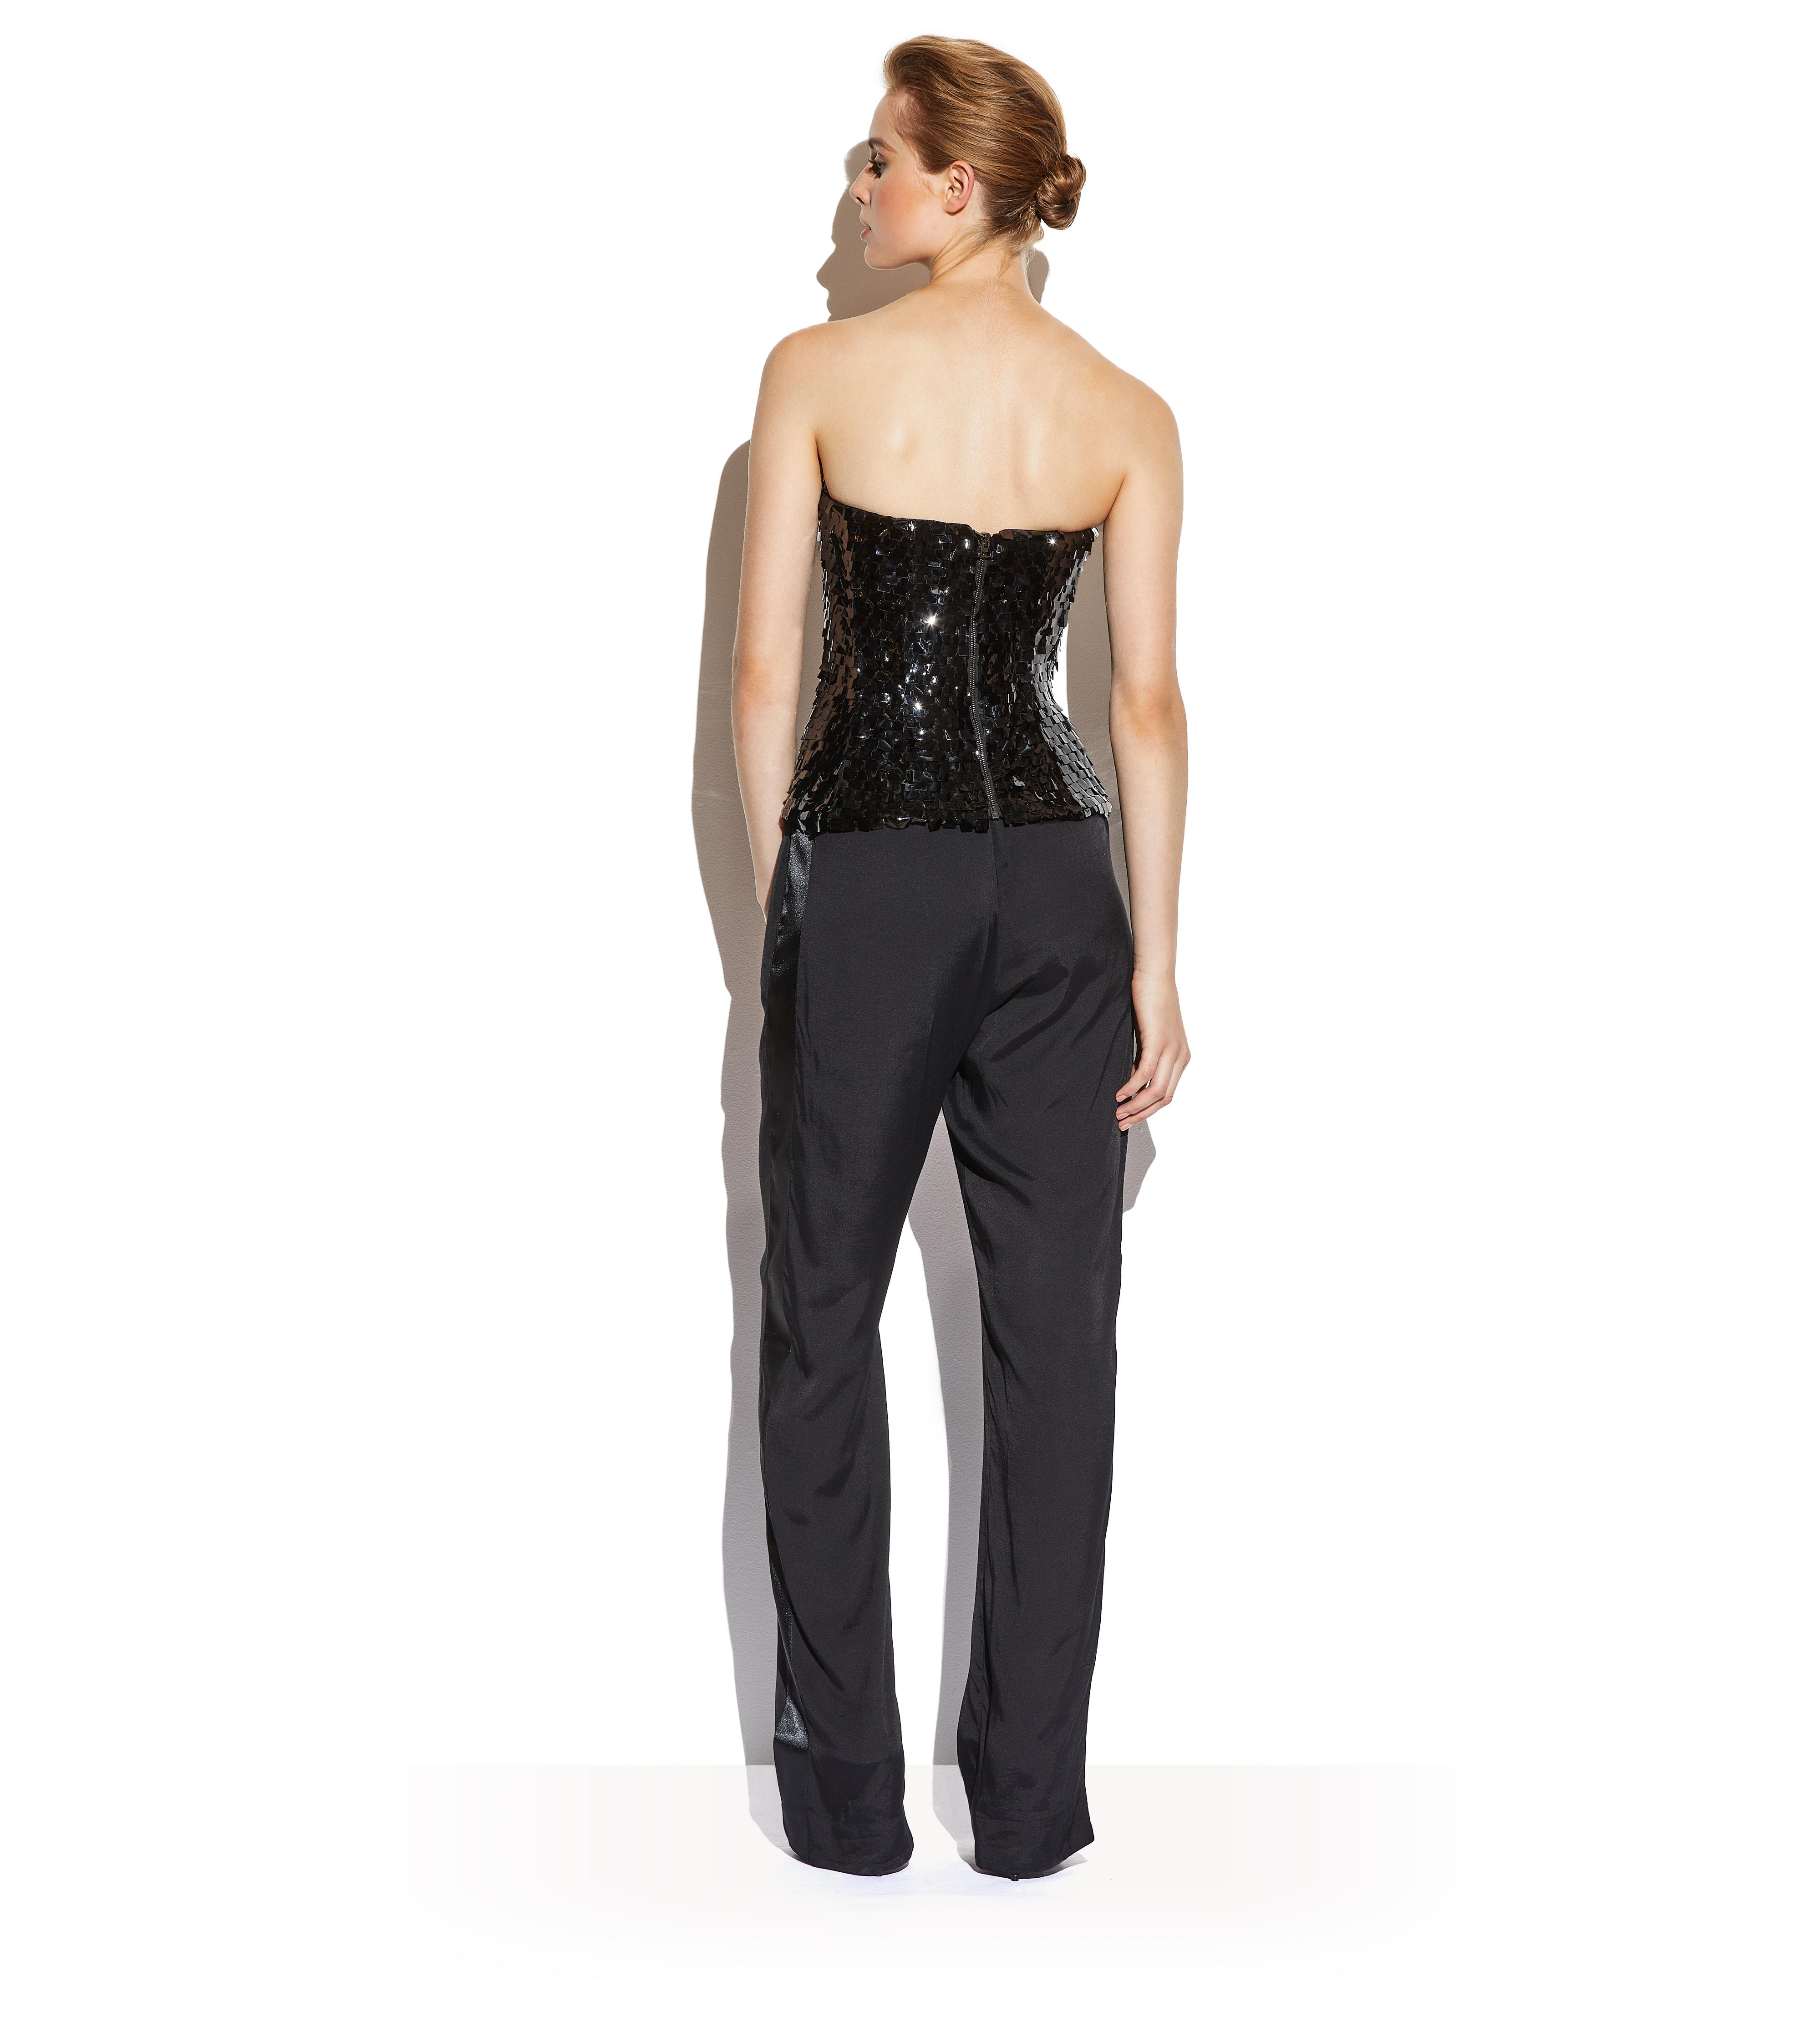 EMBROIDERED CORSET C thumbnail